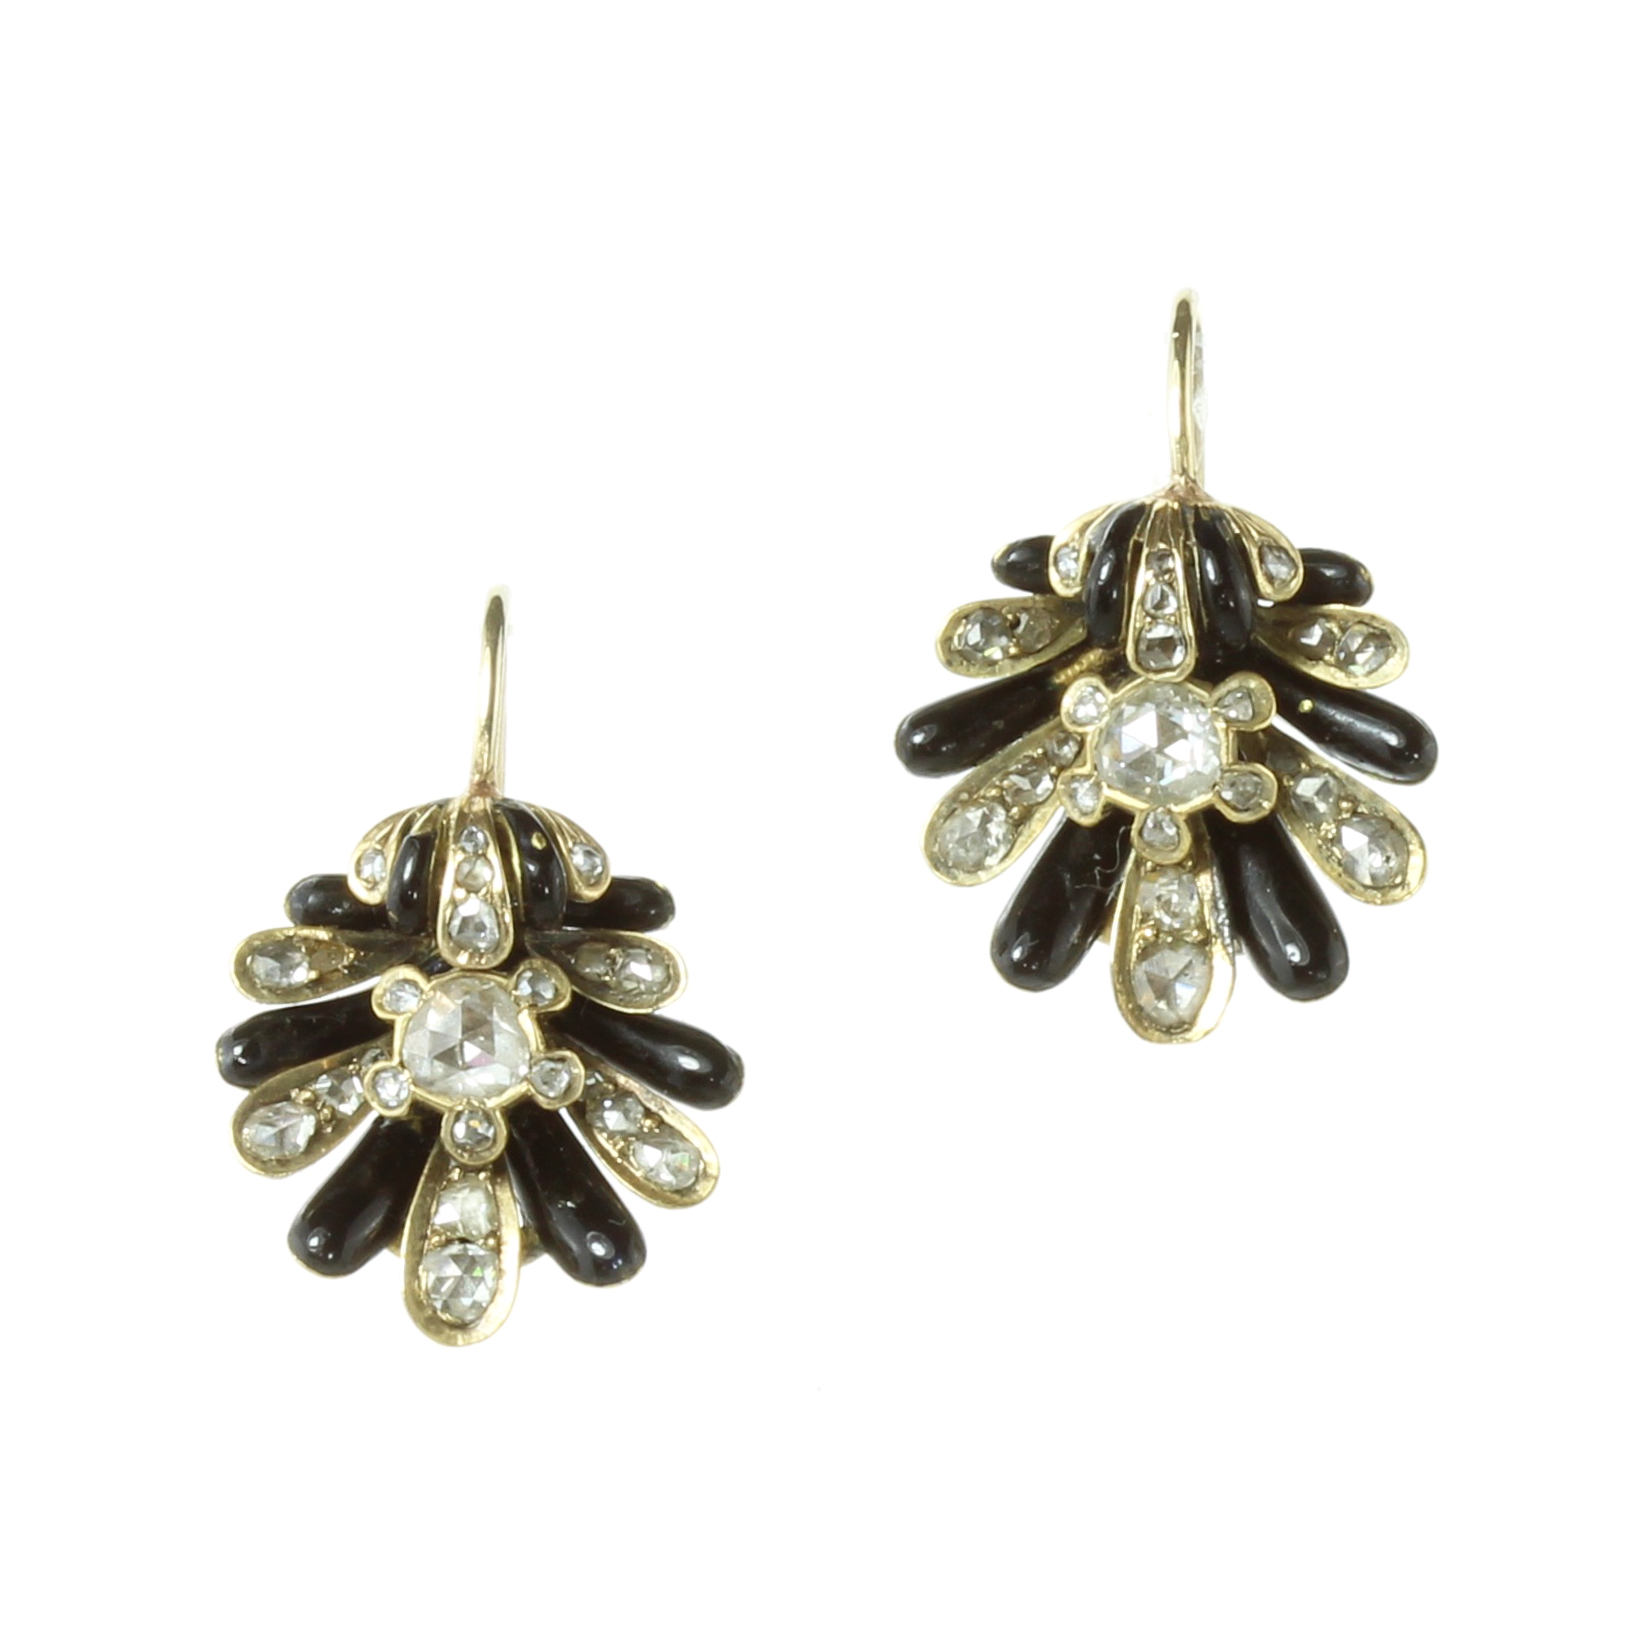 A PAIR OF ANTIQUE DIAMOND AND ENAMEL EARRINGS in high carat yellow gold each designed as a scallop